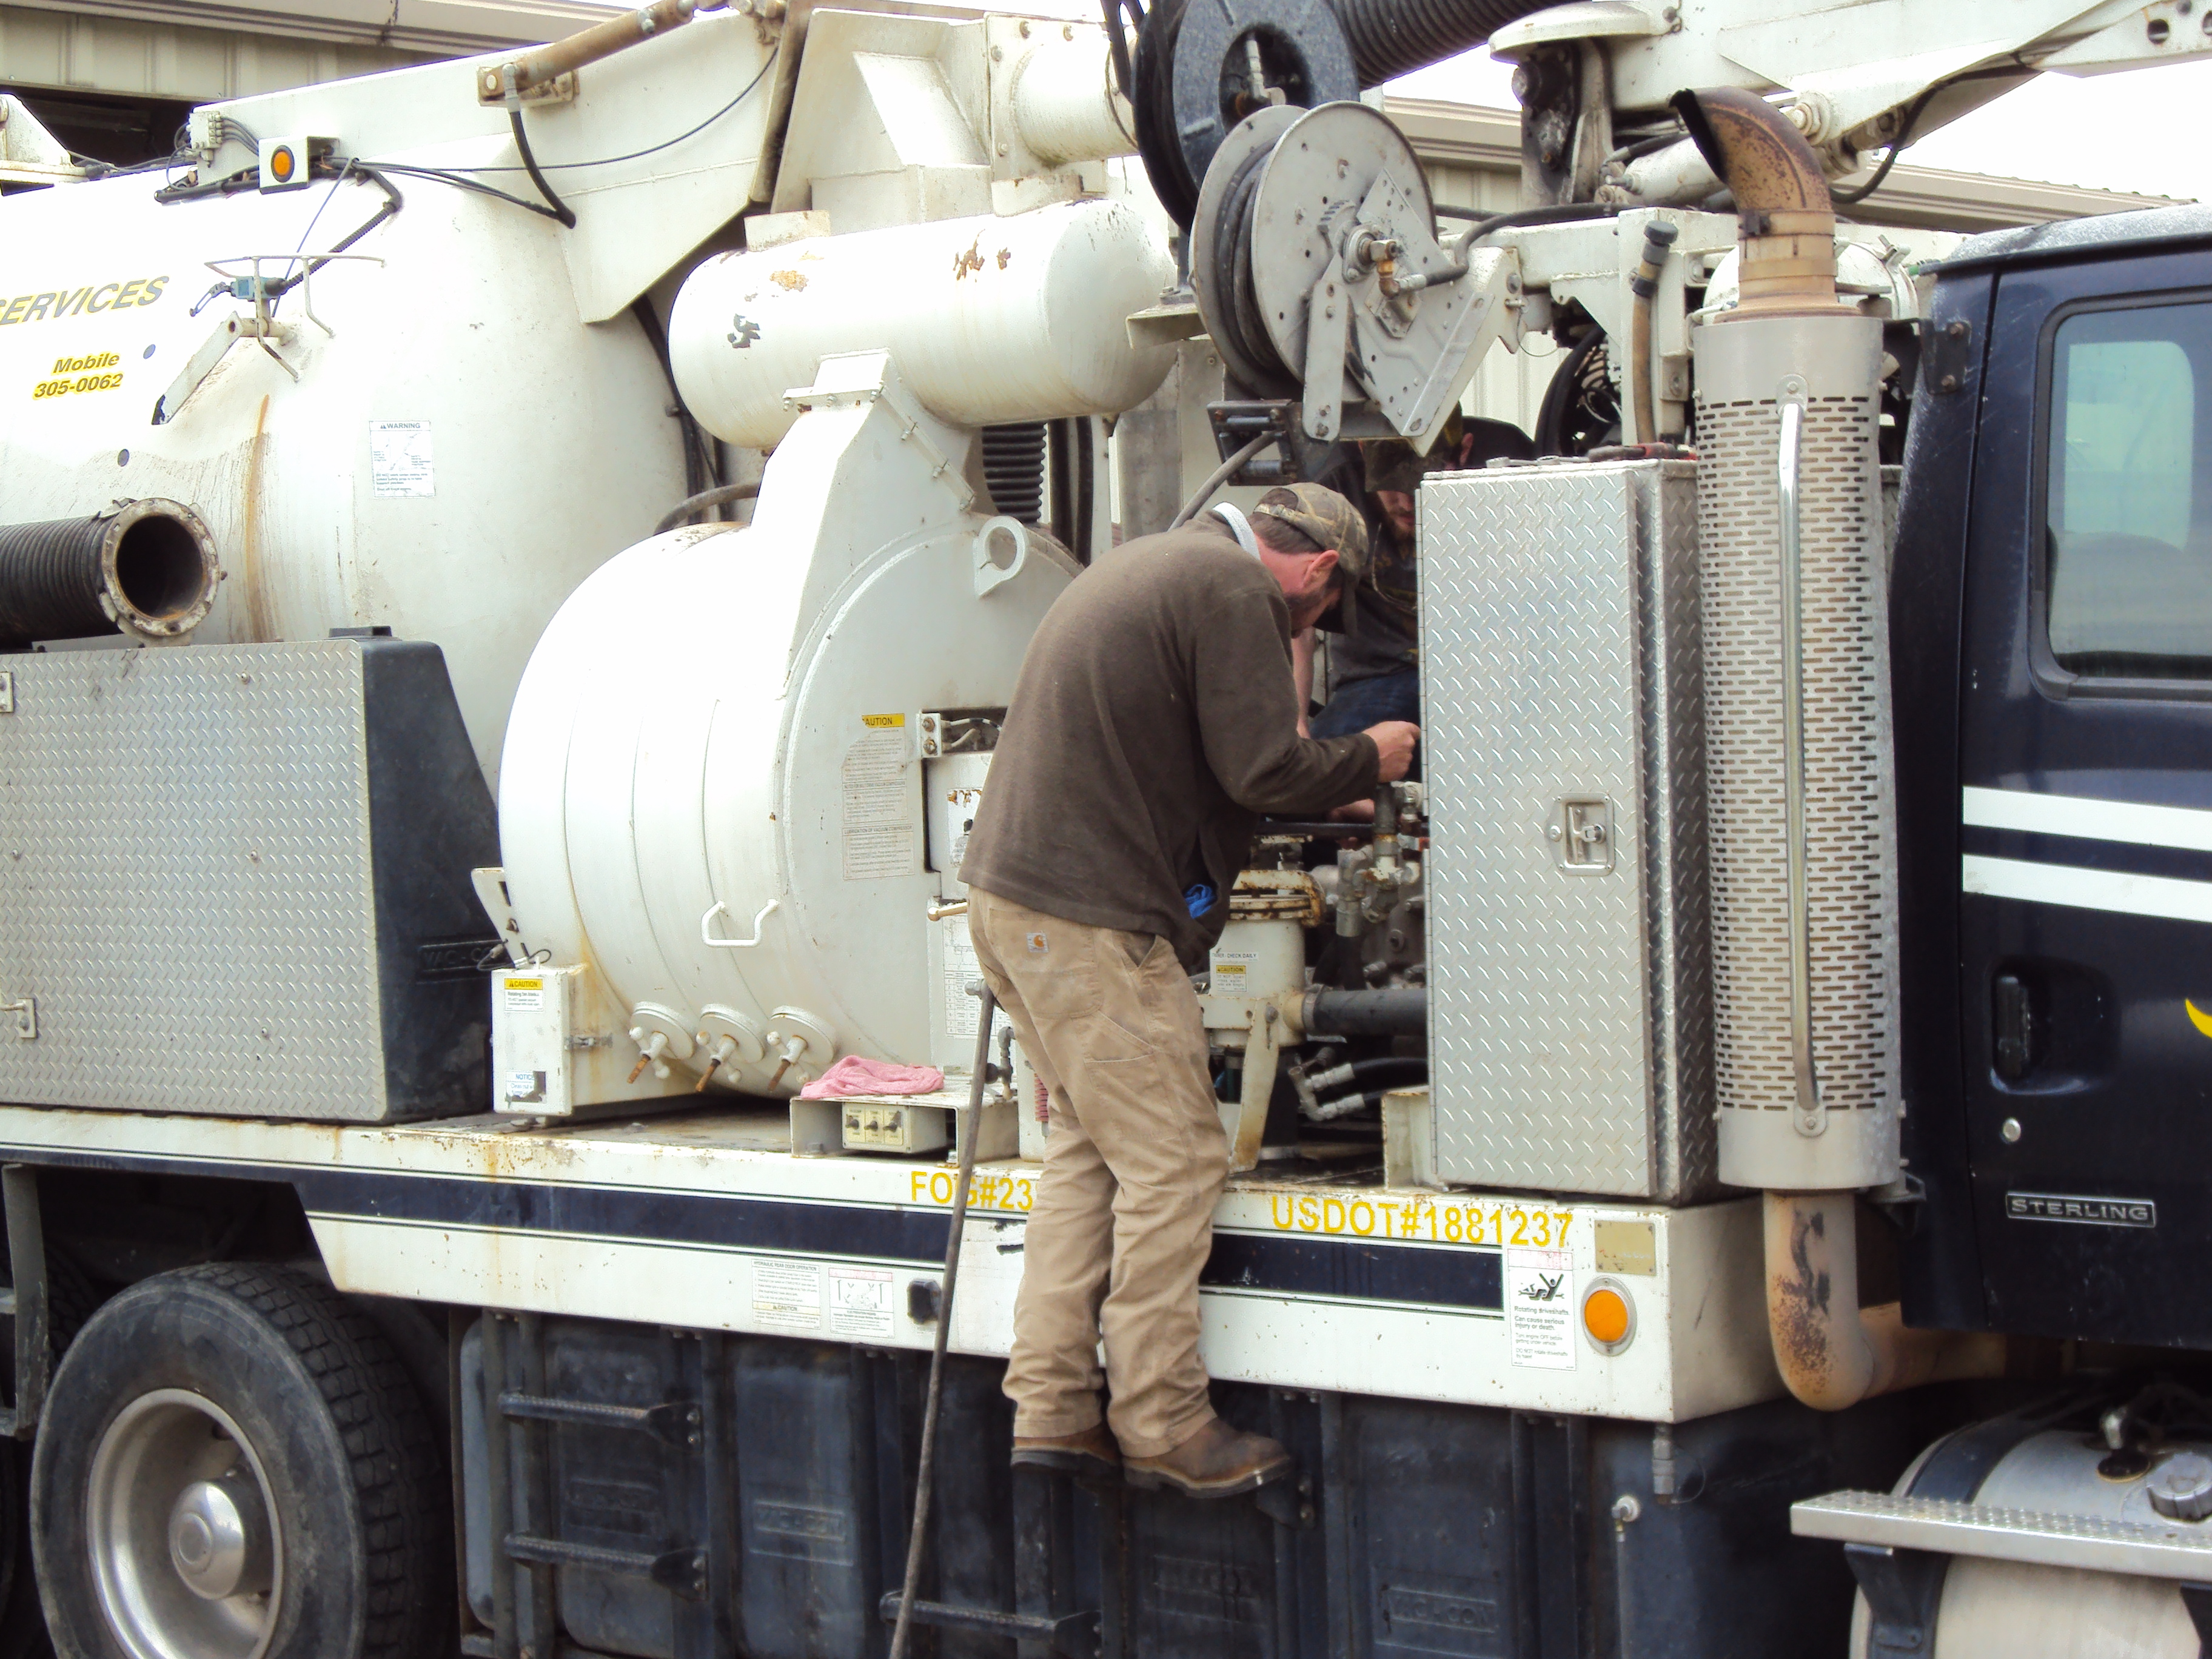 We work on all types of equipment